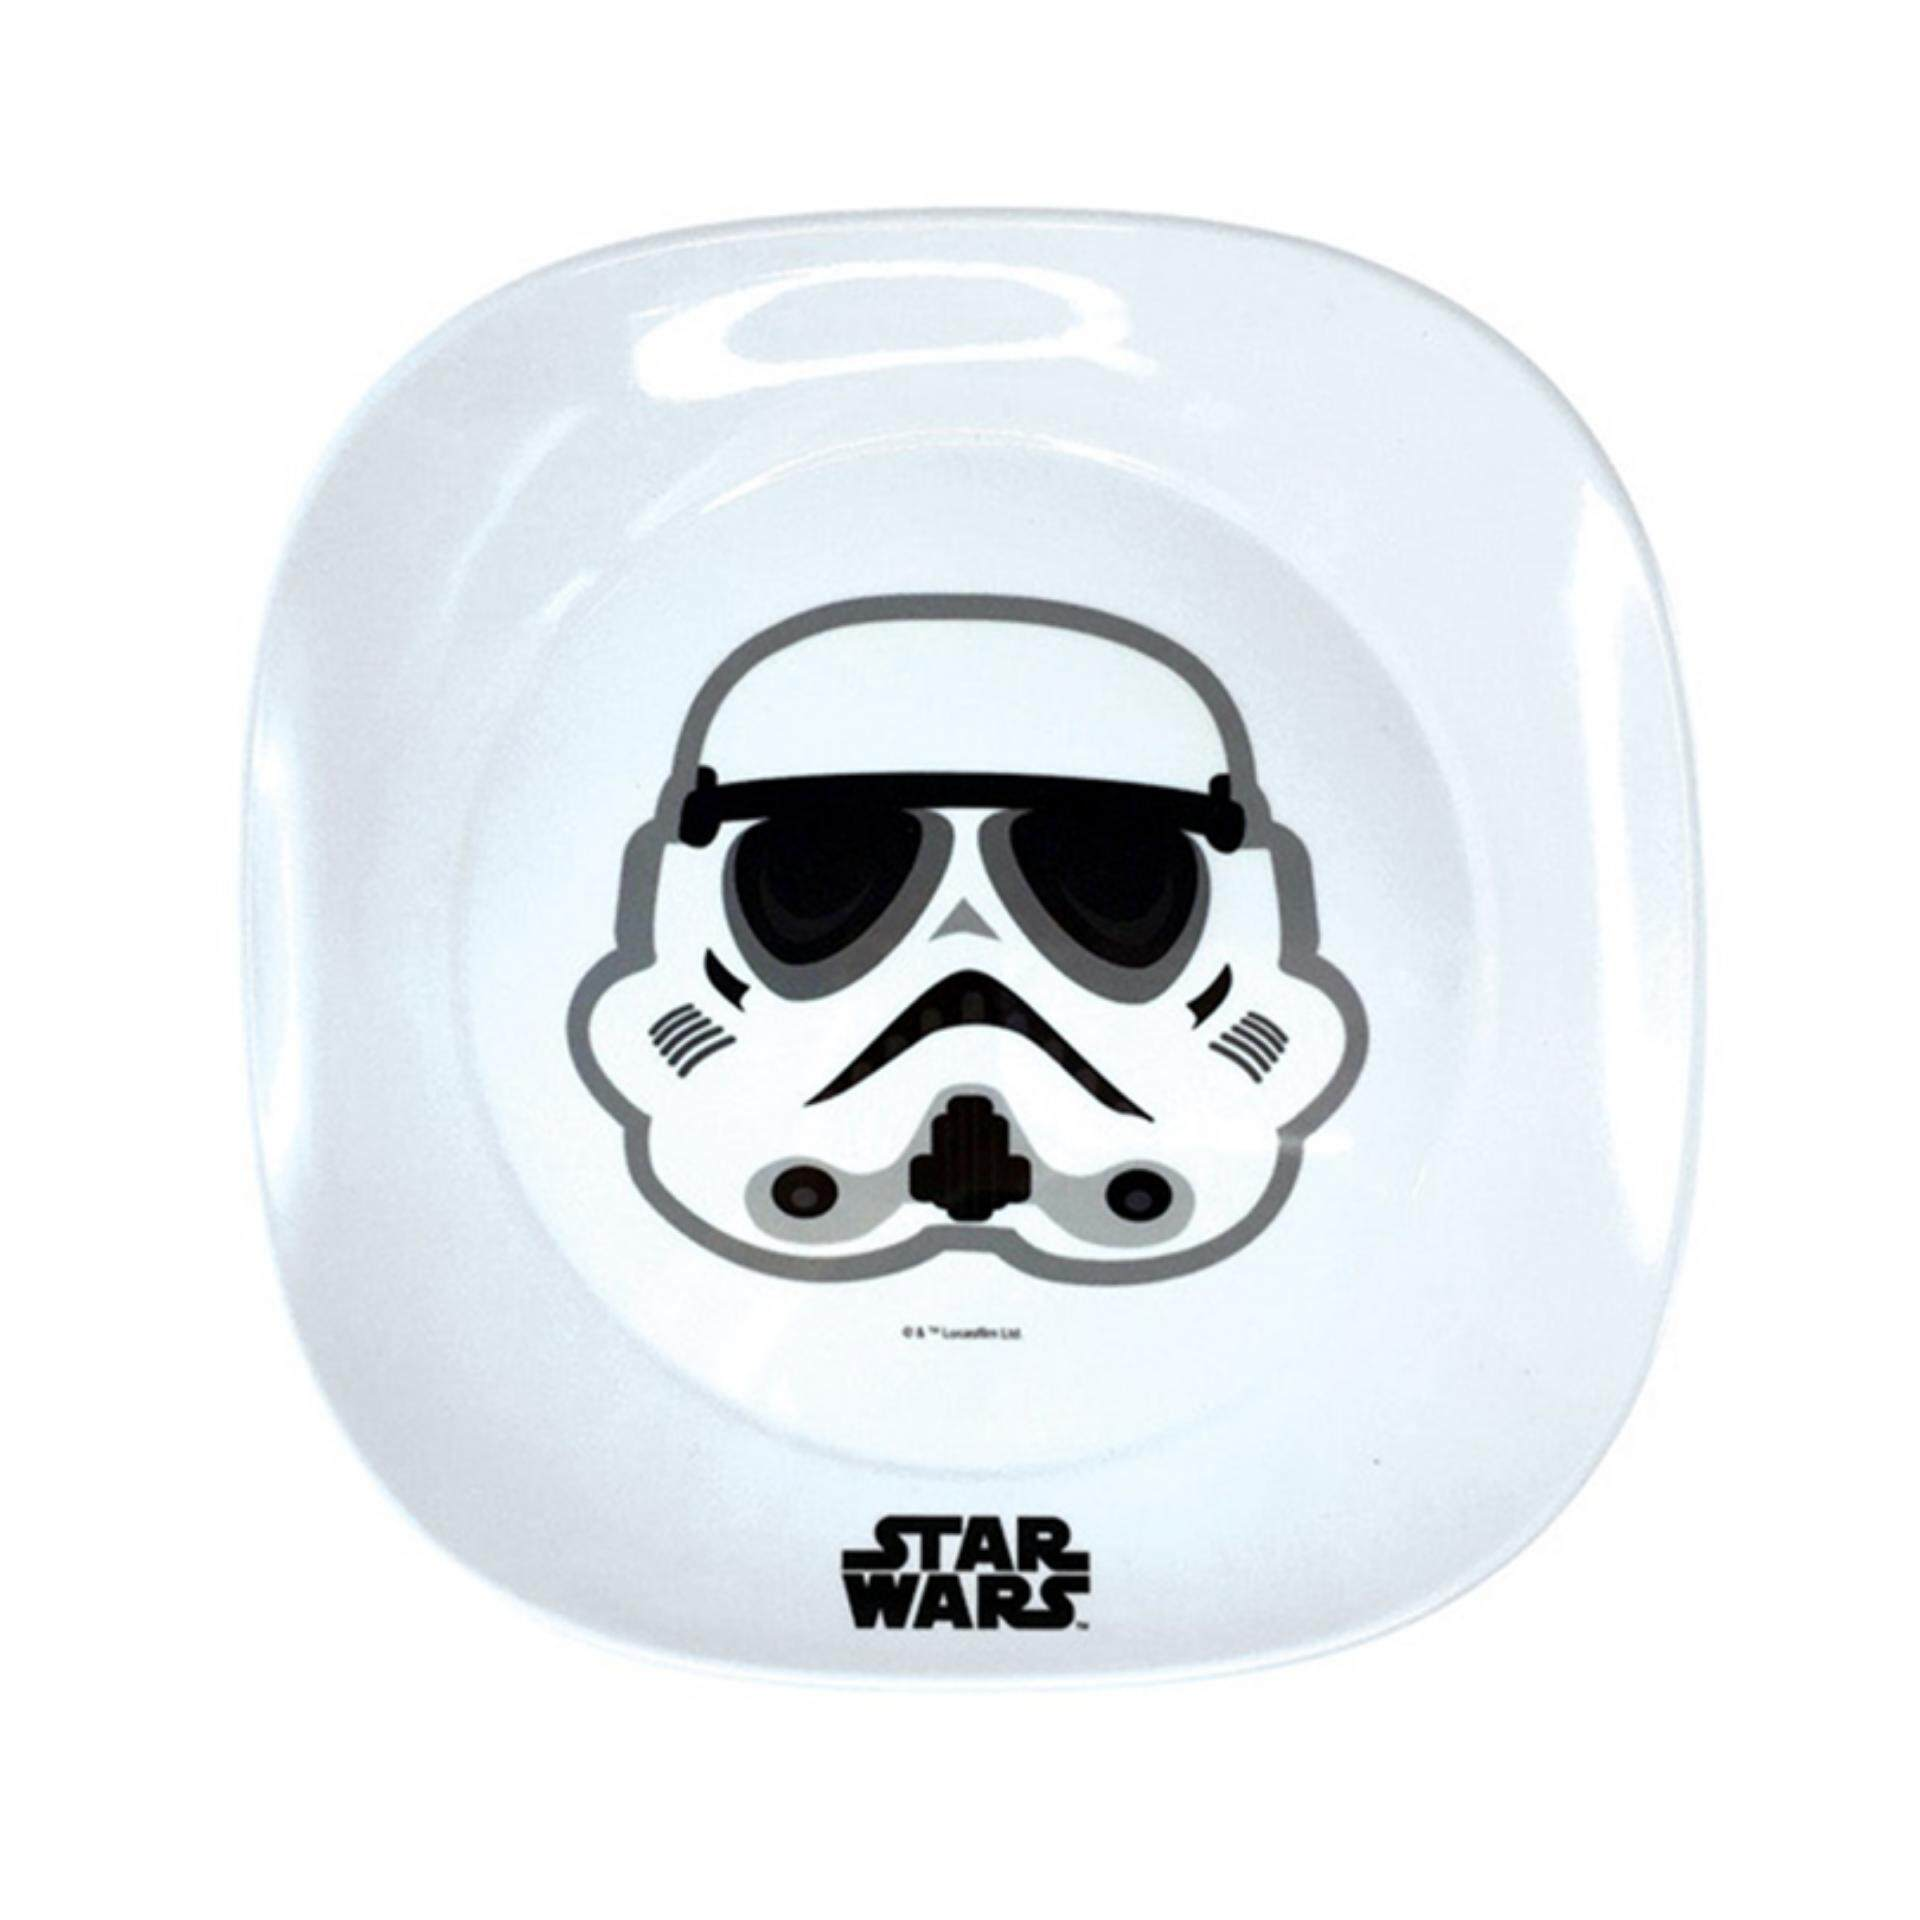 Disney Star Wars Rogue One 9 Inches Plate - White Colour